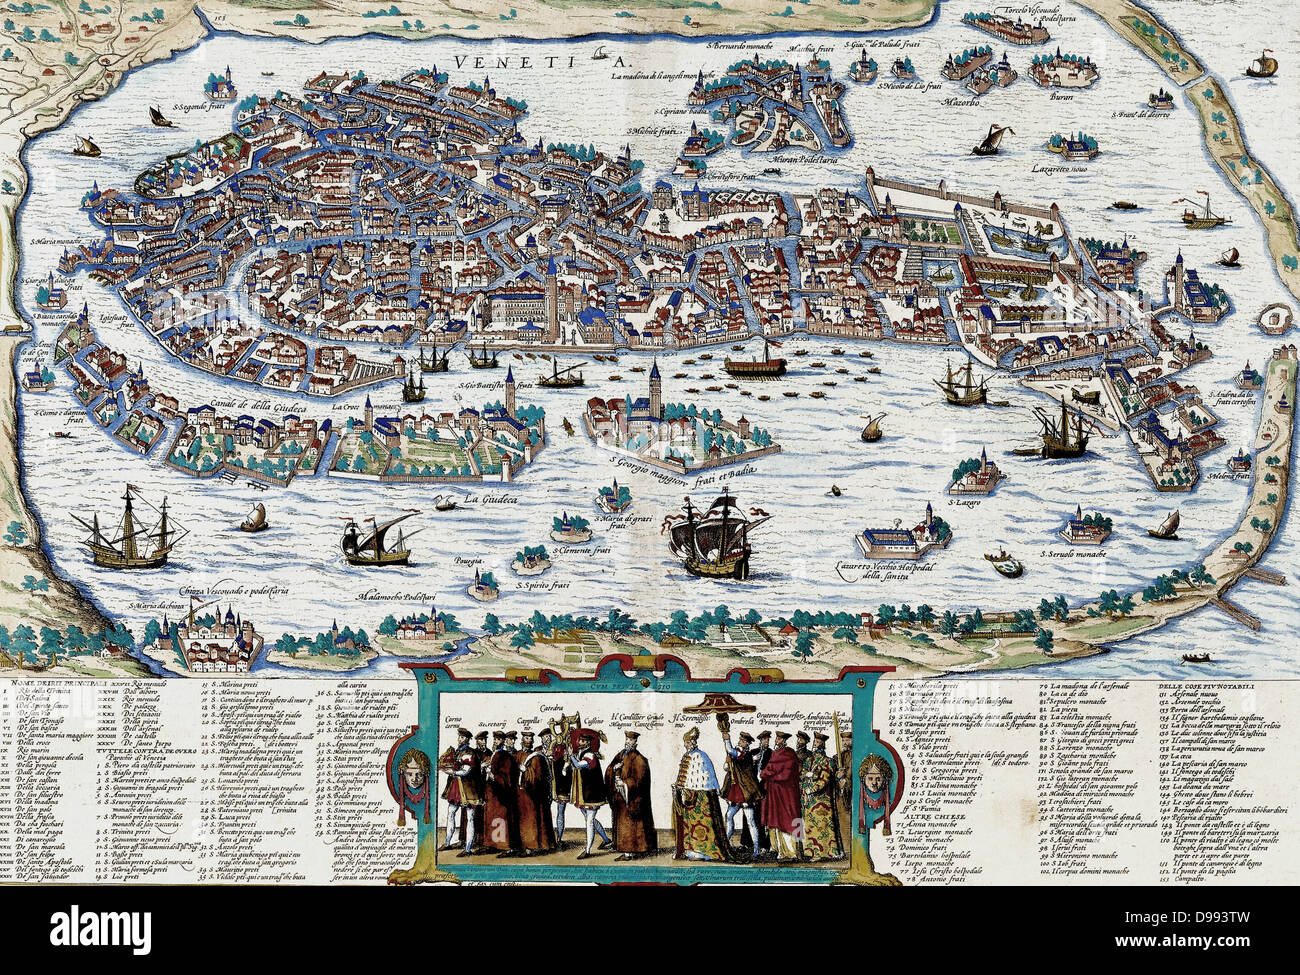 Venice depicted with a procession by the Doge of Venice, circa 17th Century. - Stock Image